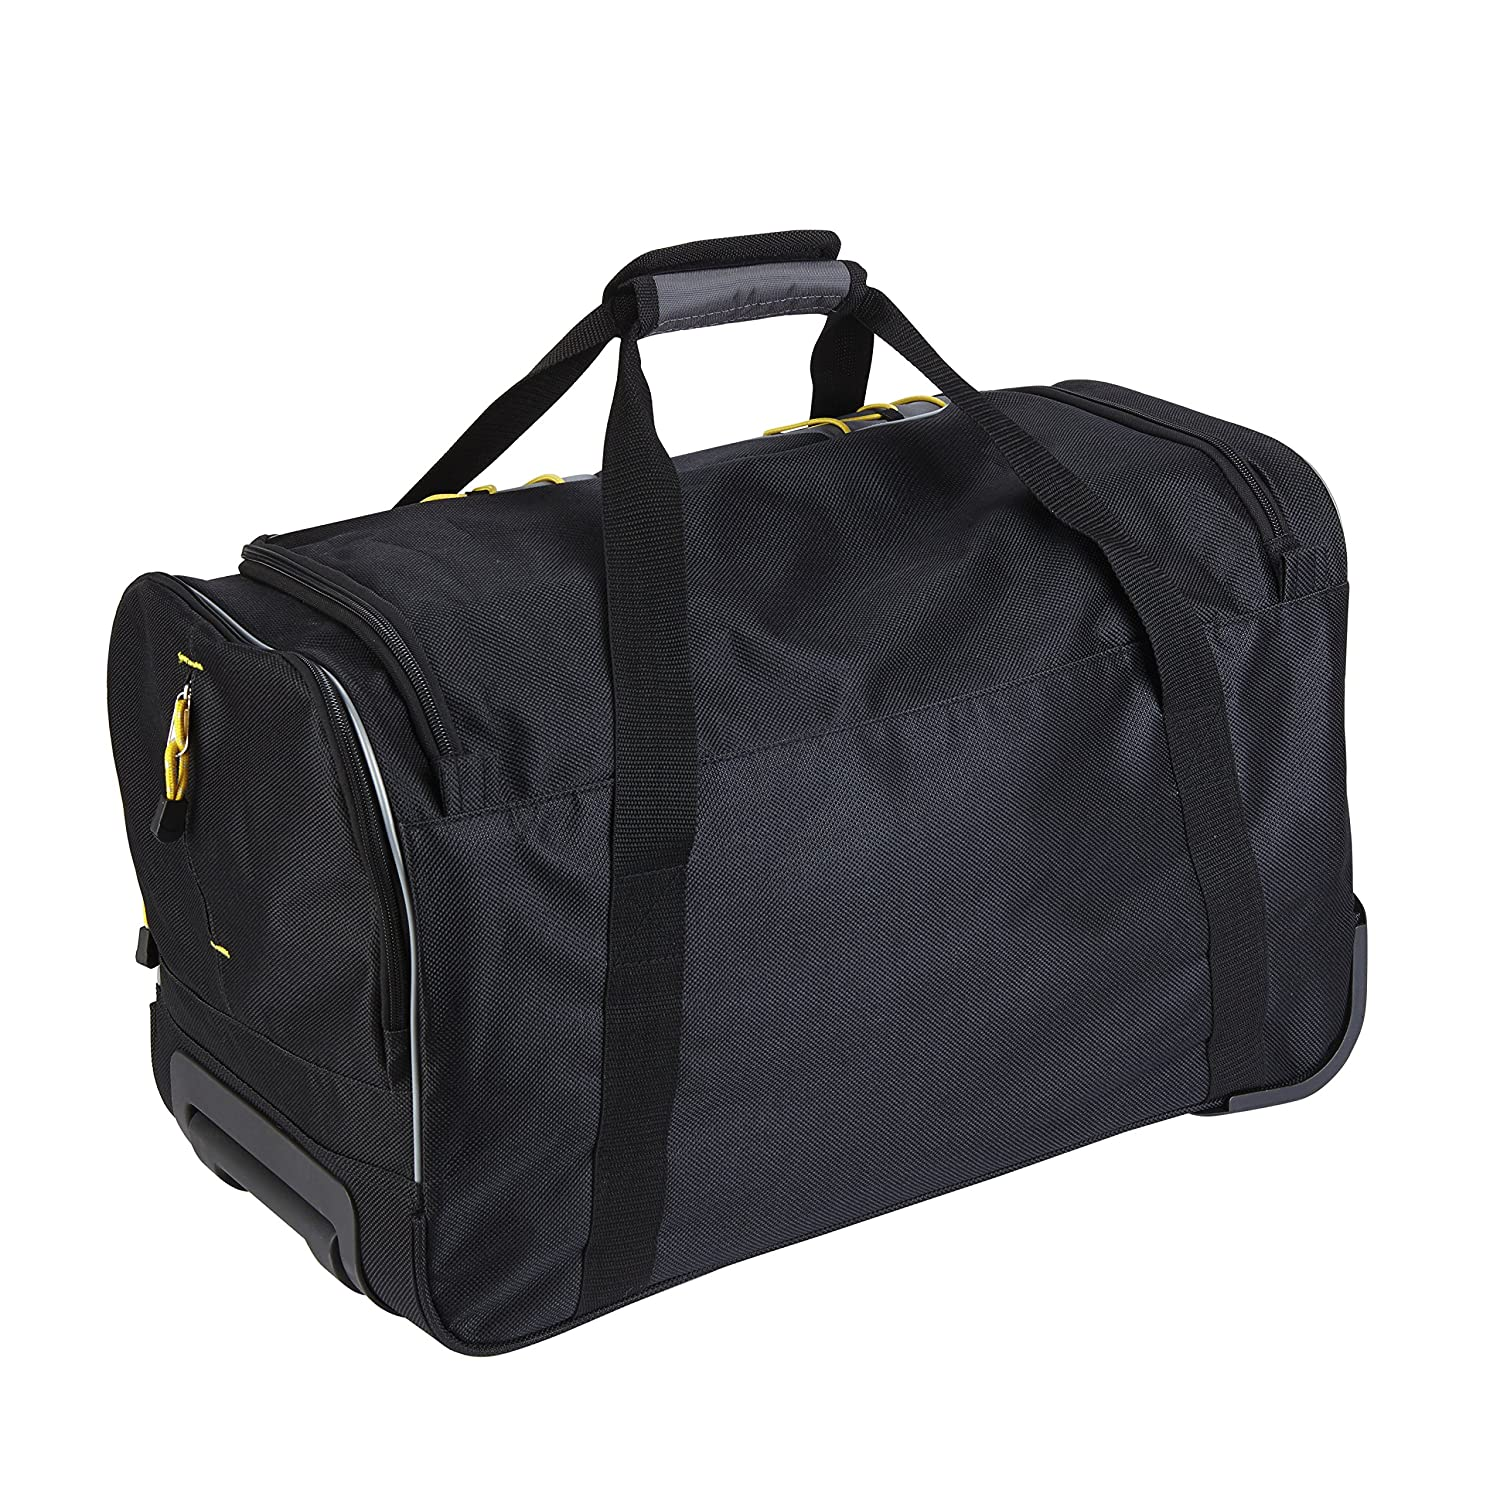 TPRC 21 Black with Yellow Trims Sierra Madre Sport Rolling Weekender Duffel with Dual Side Pockets